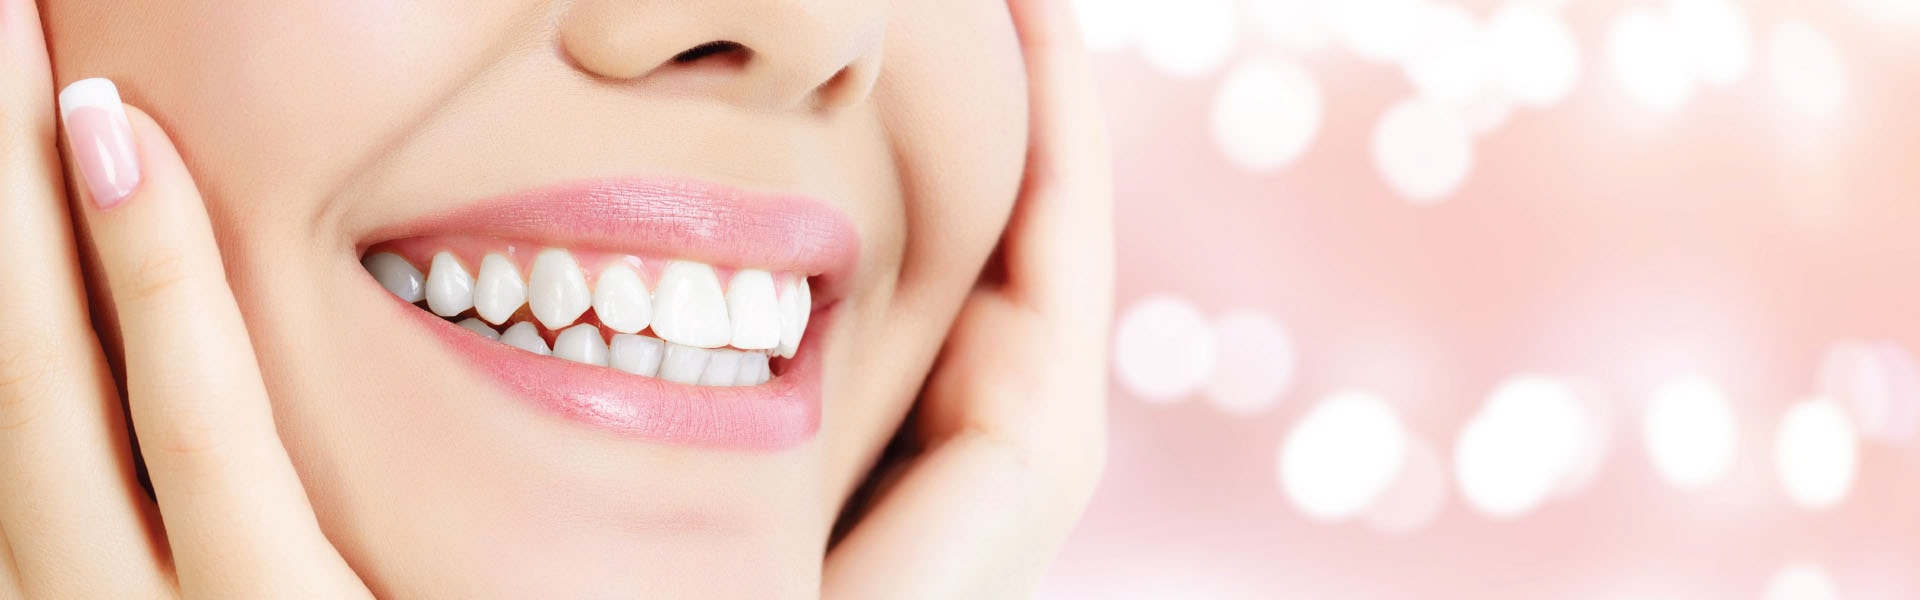 Cheapest veneers abroad — TOP 4 places to get a budget brilliant